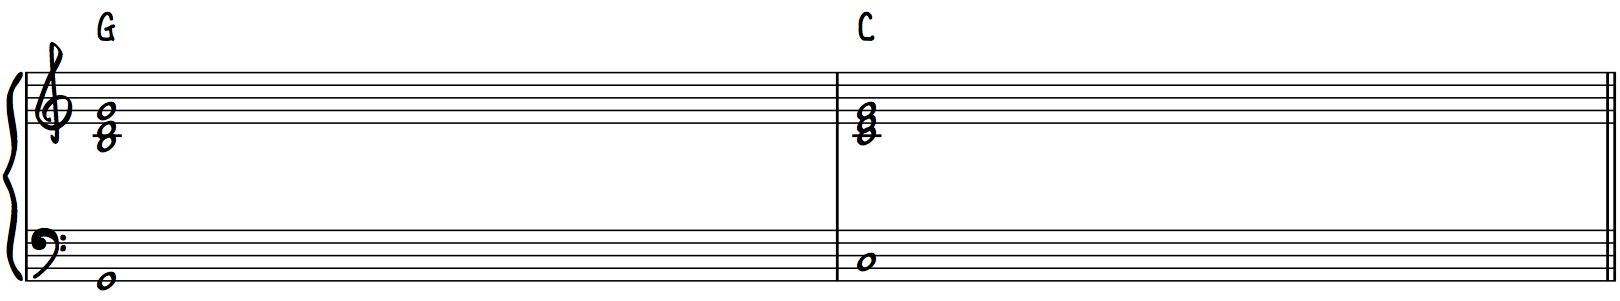 00 The Most Common Chord Progression Dominant to Tonic V to I 5 to 1 G to C